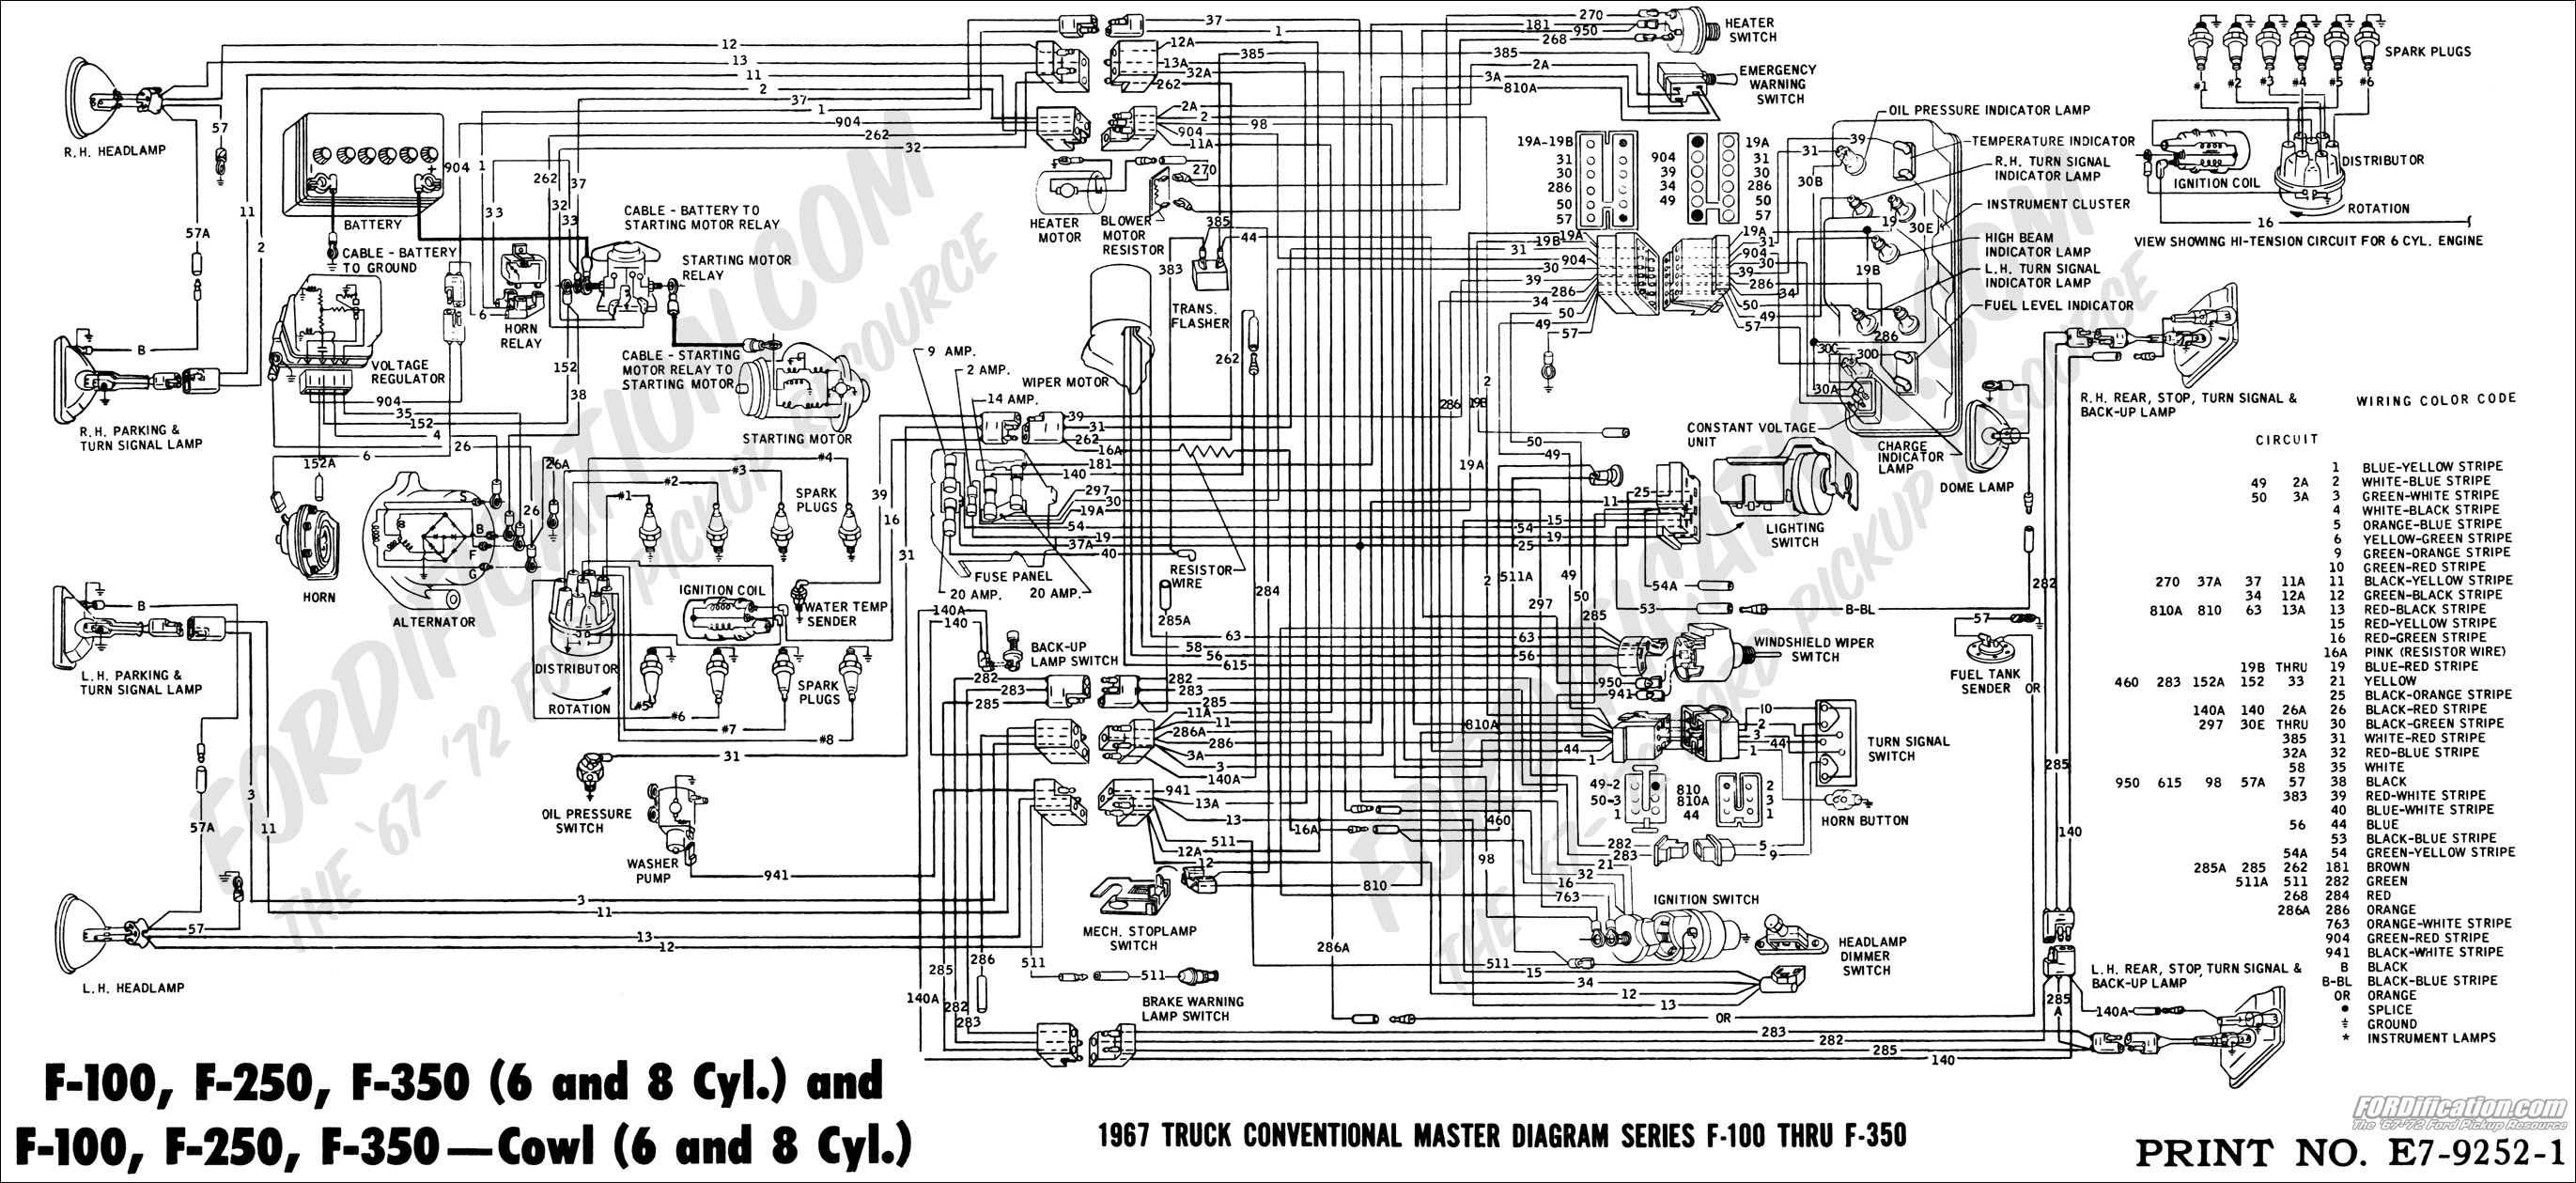 Ford F550 Wiring Diagram For Alt Worksheet And 2011 Fuse Box F800 Schematics Diagrams U2022 Rh Parntesis Co 2000 Panel